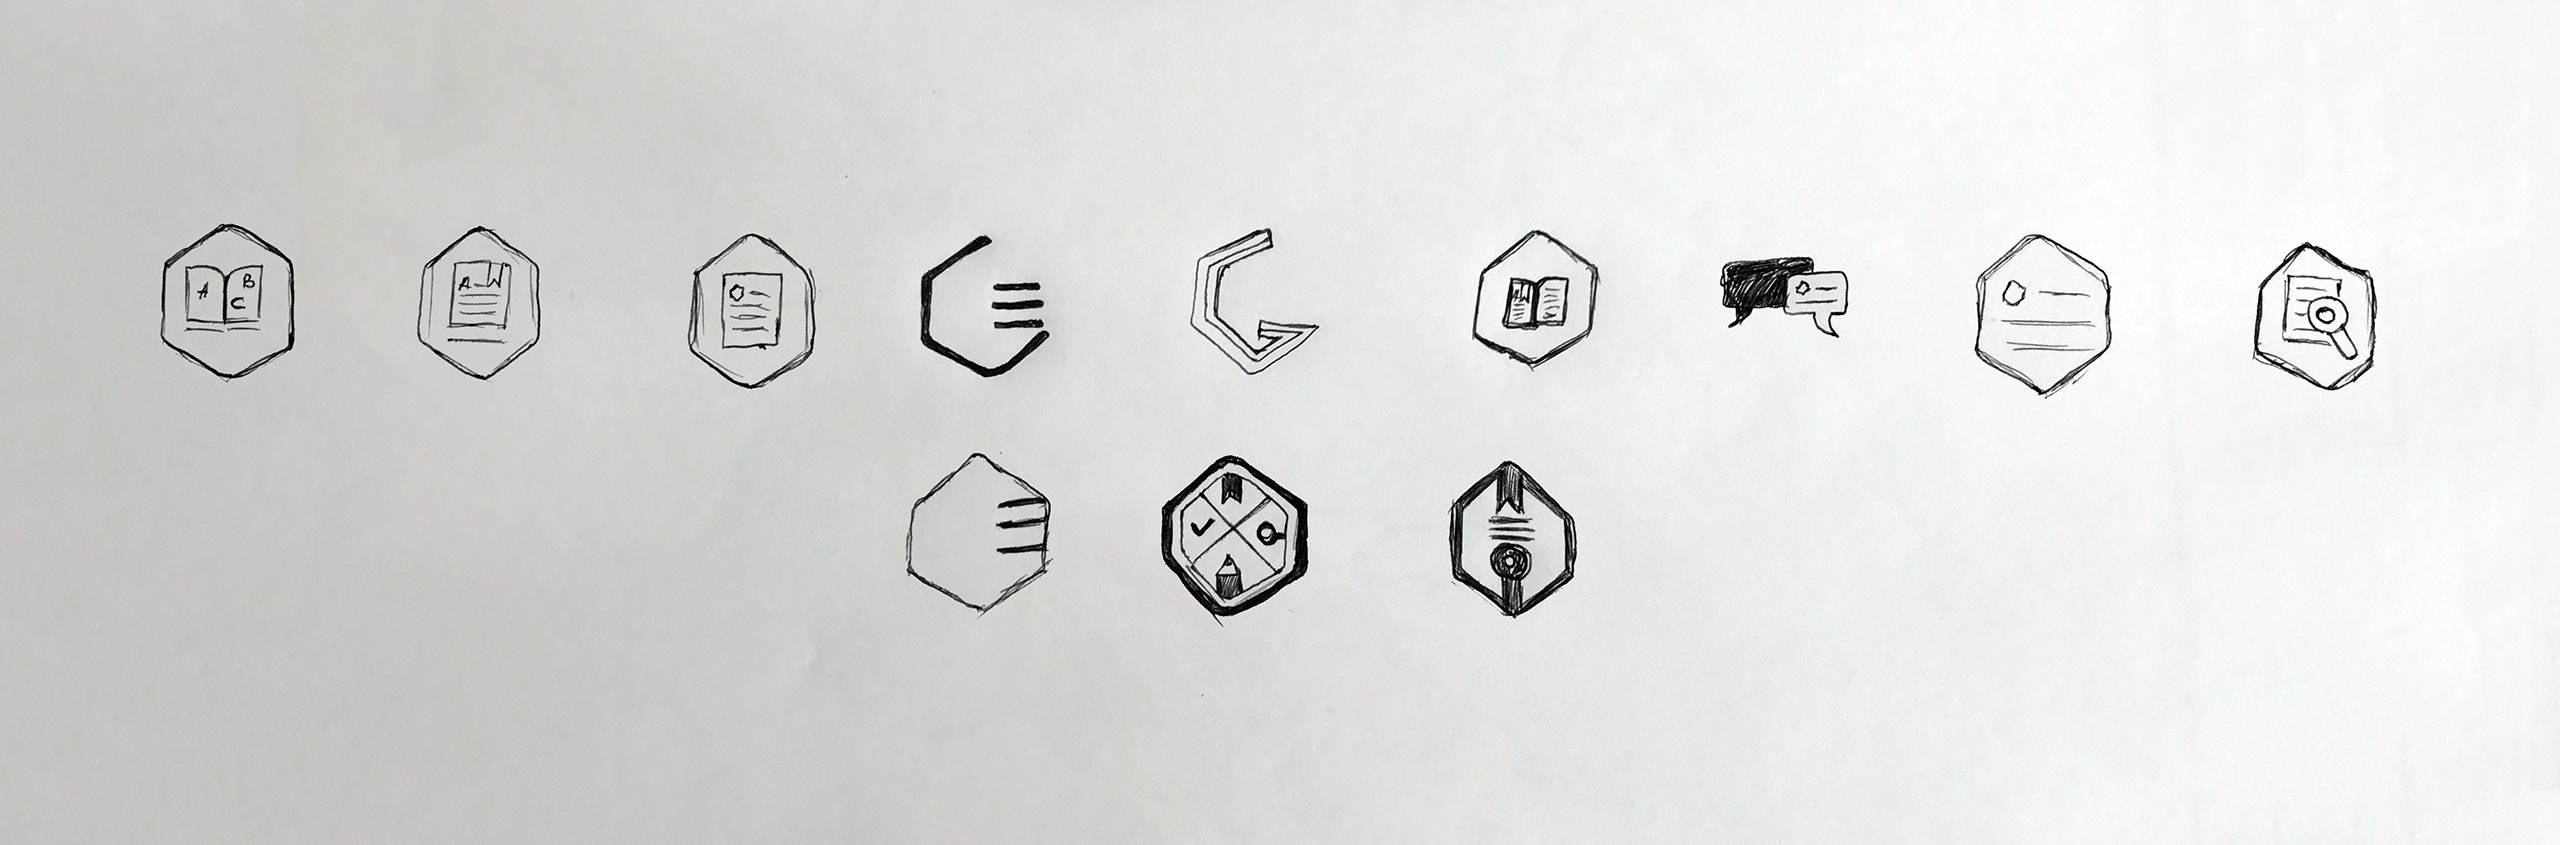 conversion-glossary-logo-sketches